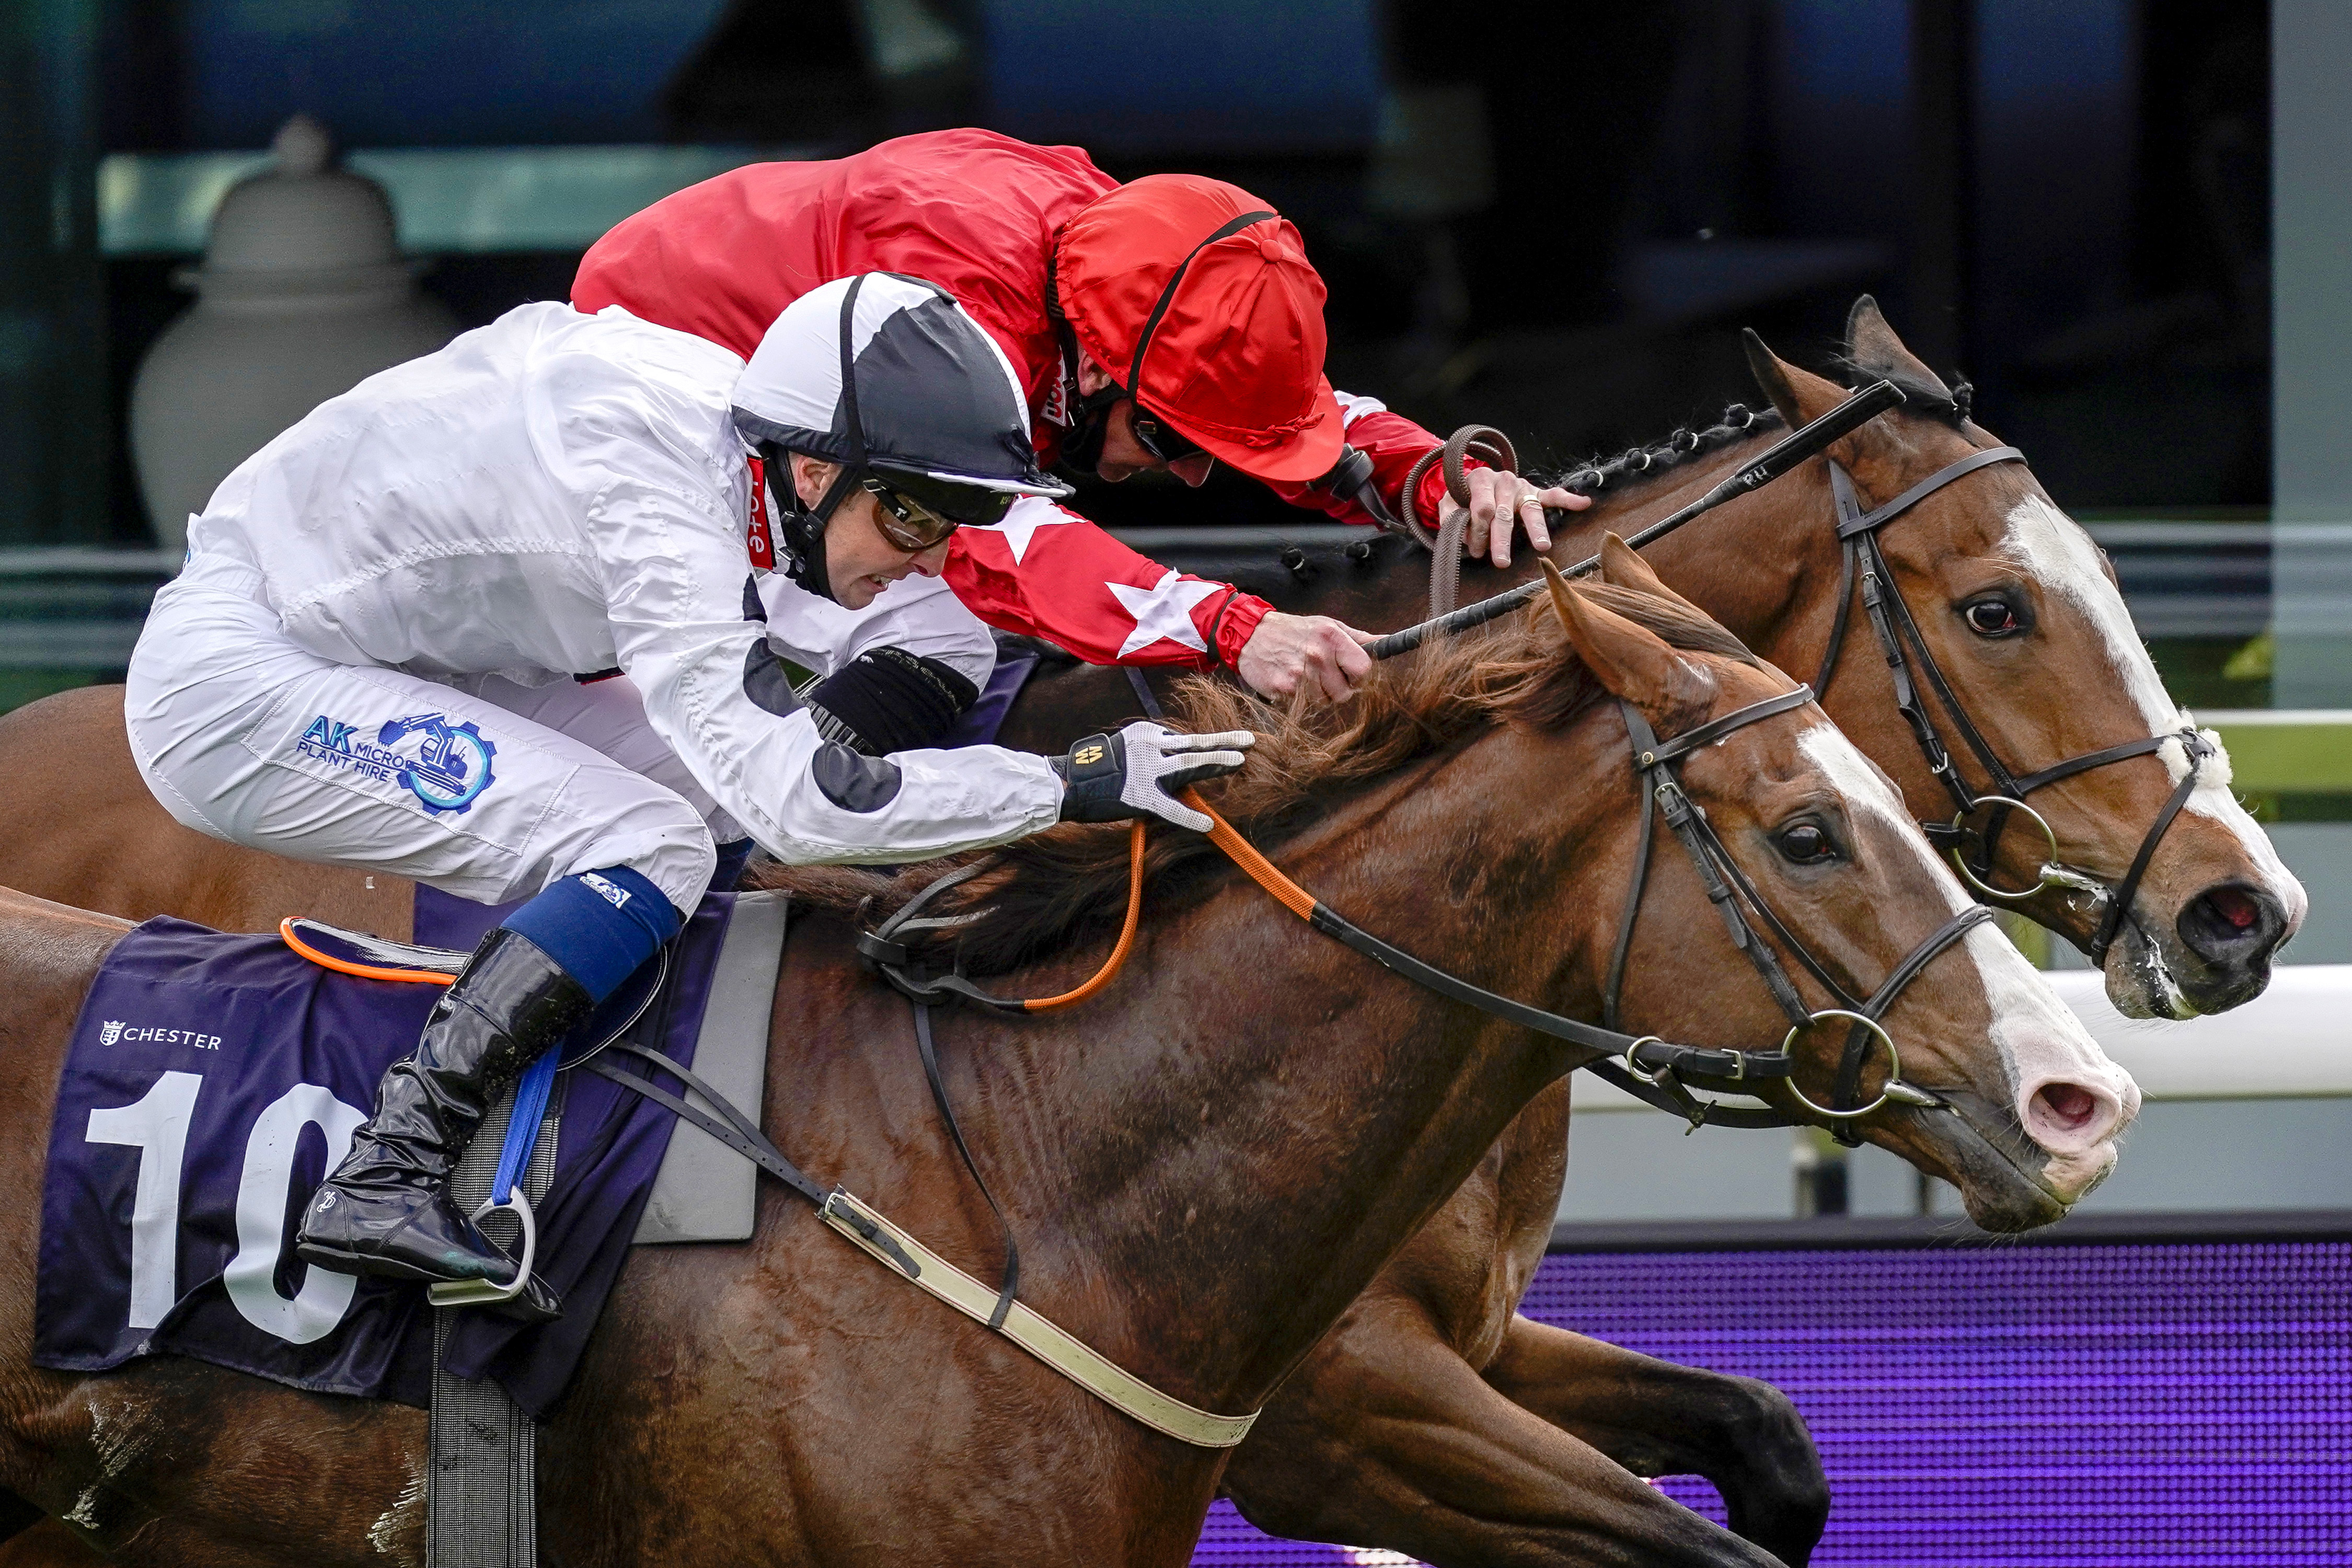 <p>Baryshnikov ridden by Connor Beasley (left, white silks) beats Spirit Dancer ridden by Paul Hanagan to win the Destination 2 Handicap during Ladies Day of the Boodles May Festival 2021 at Chester Racecourse. Picture date: Thursday May 6, 2021. See PA story RACING Chester. Photo credit should read: Alan Crowhurst/PA Wire. RESTRICTIONS: Use subject to restrictions. Editorial use only, no commercial use without prior consent from rights holder.</p>